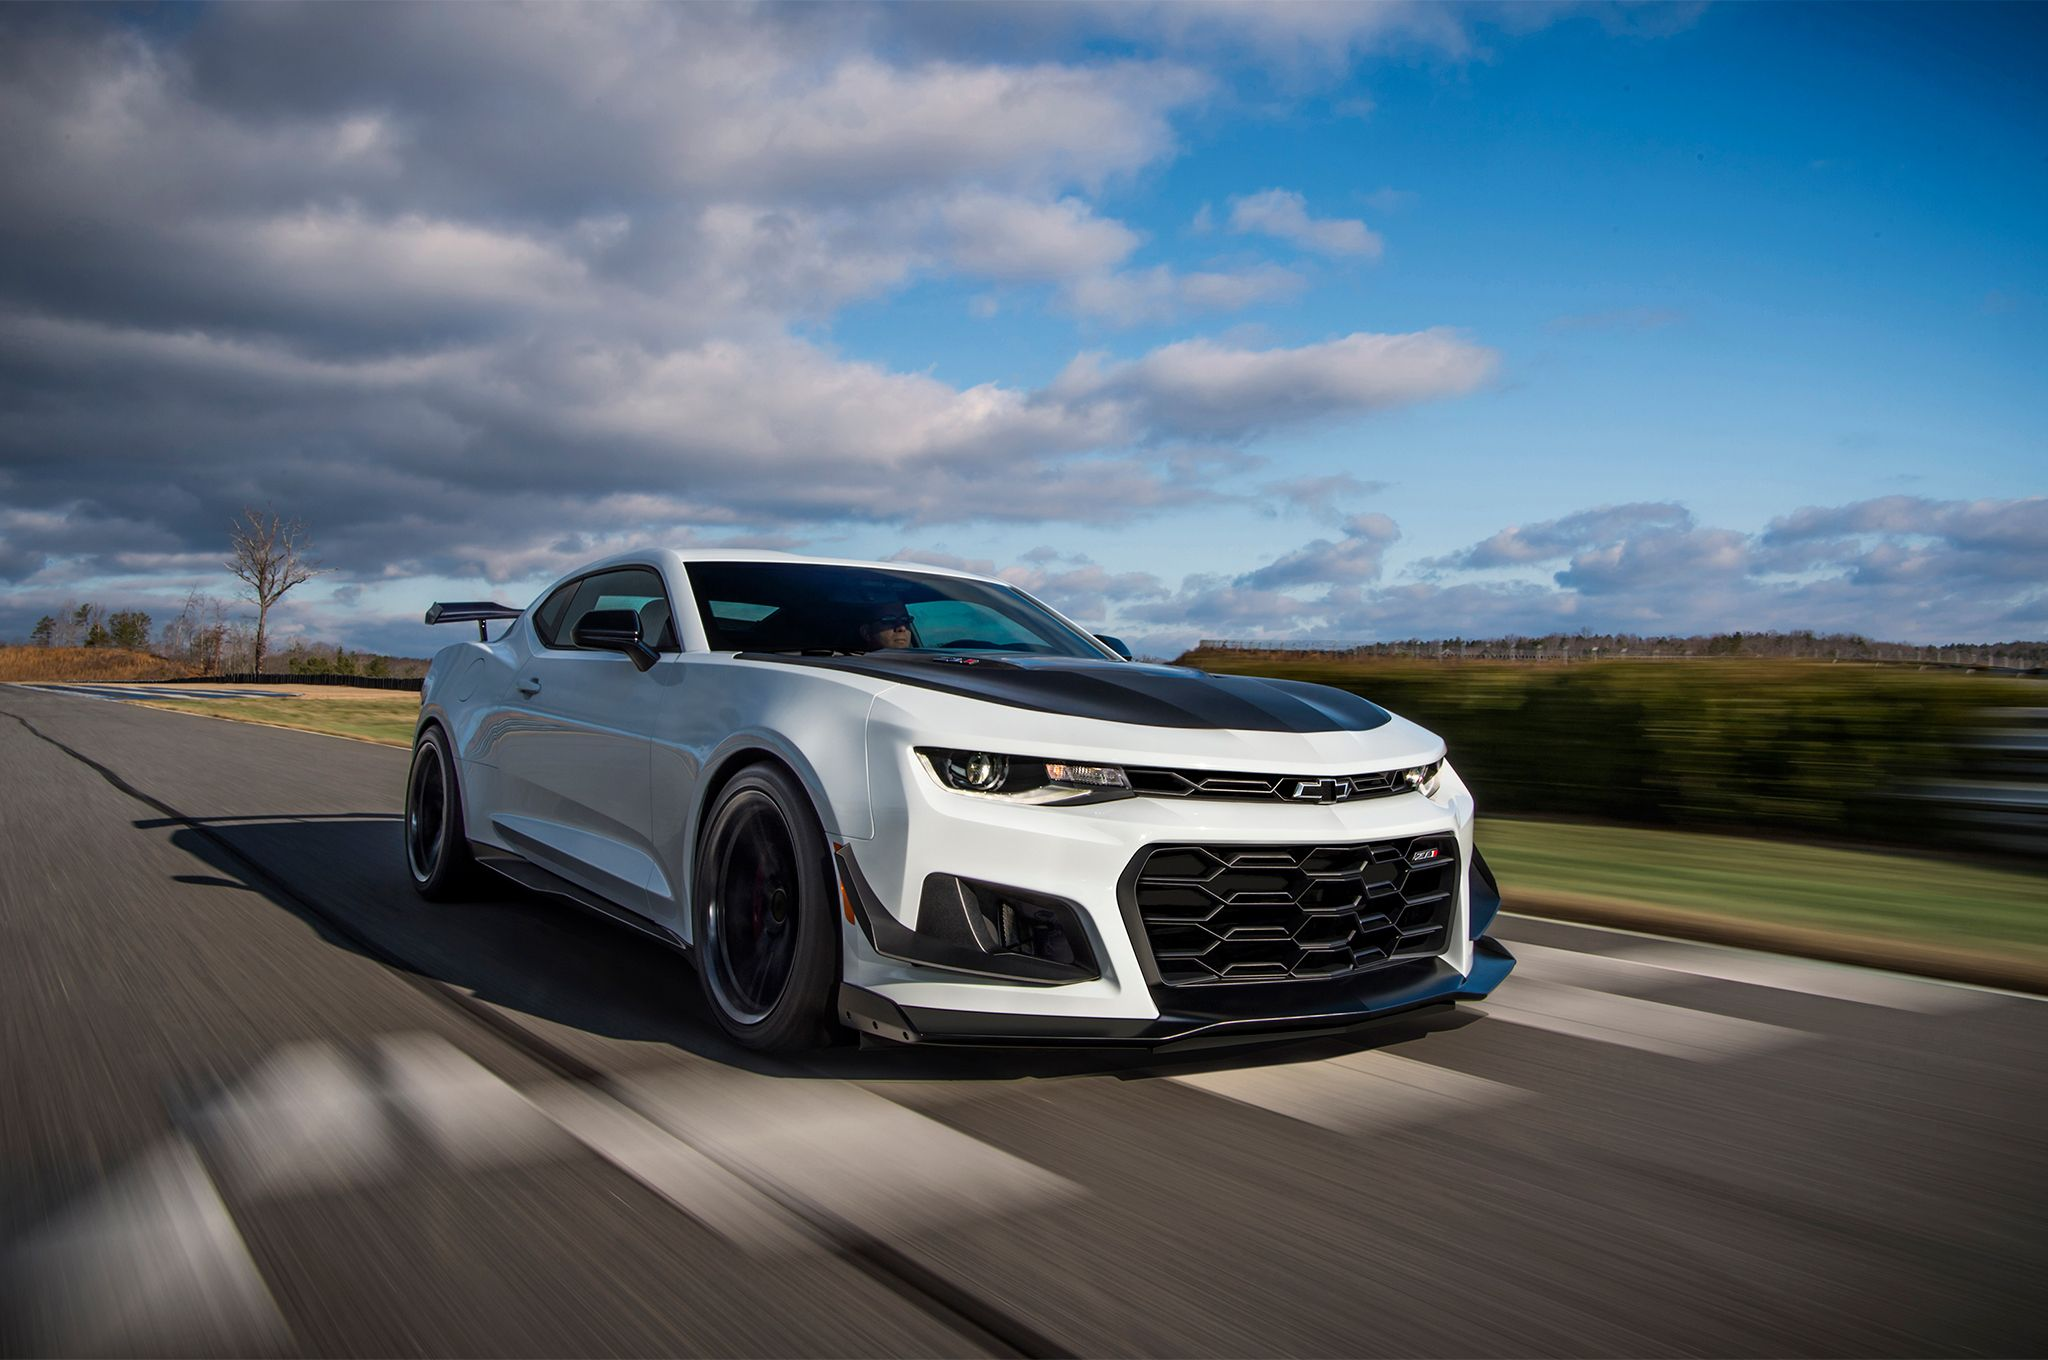 Chevrolet Camaro Zl1 Wallpapers Hd Resolution Vehicle Wallpapers